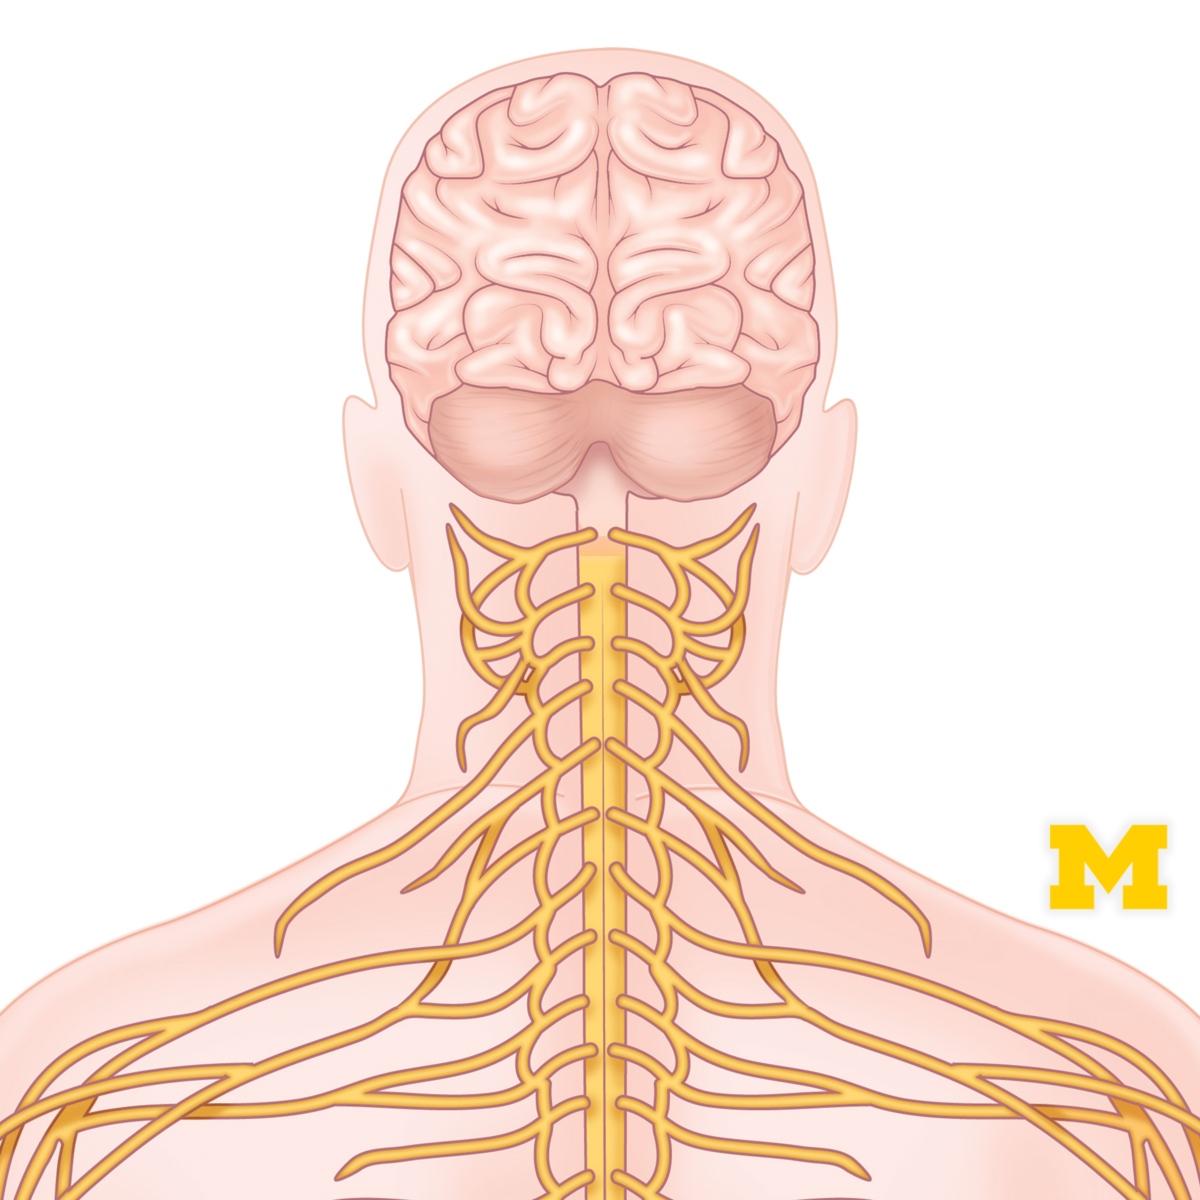 Free Online Course Anatomy Human Neuroanatomy From Coursera